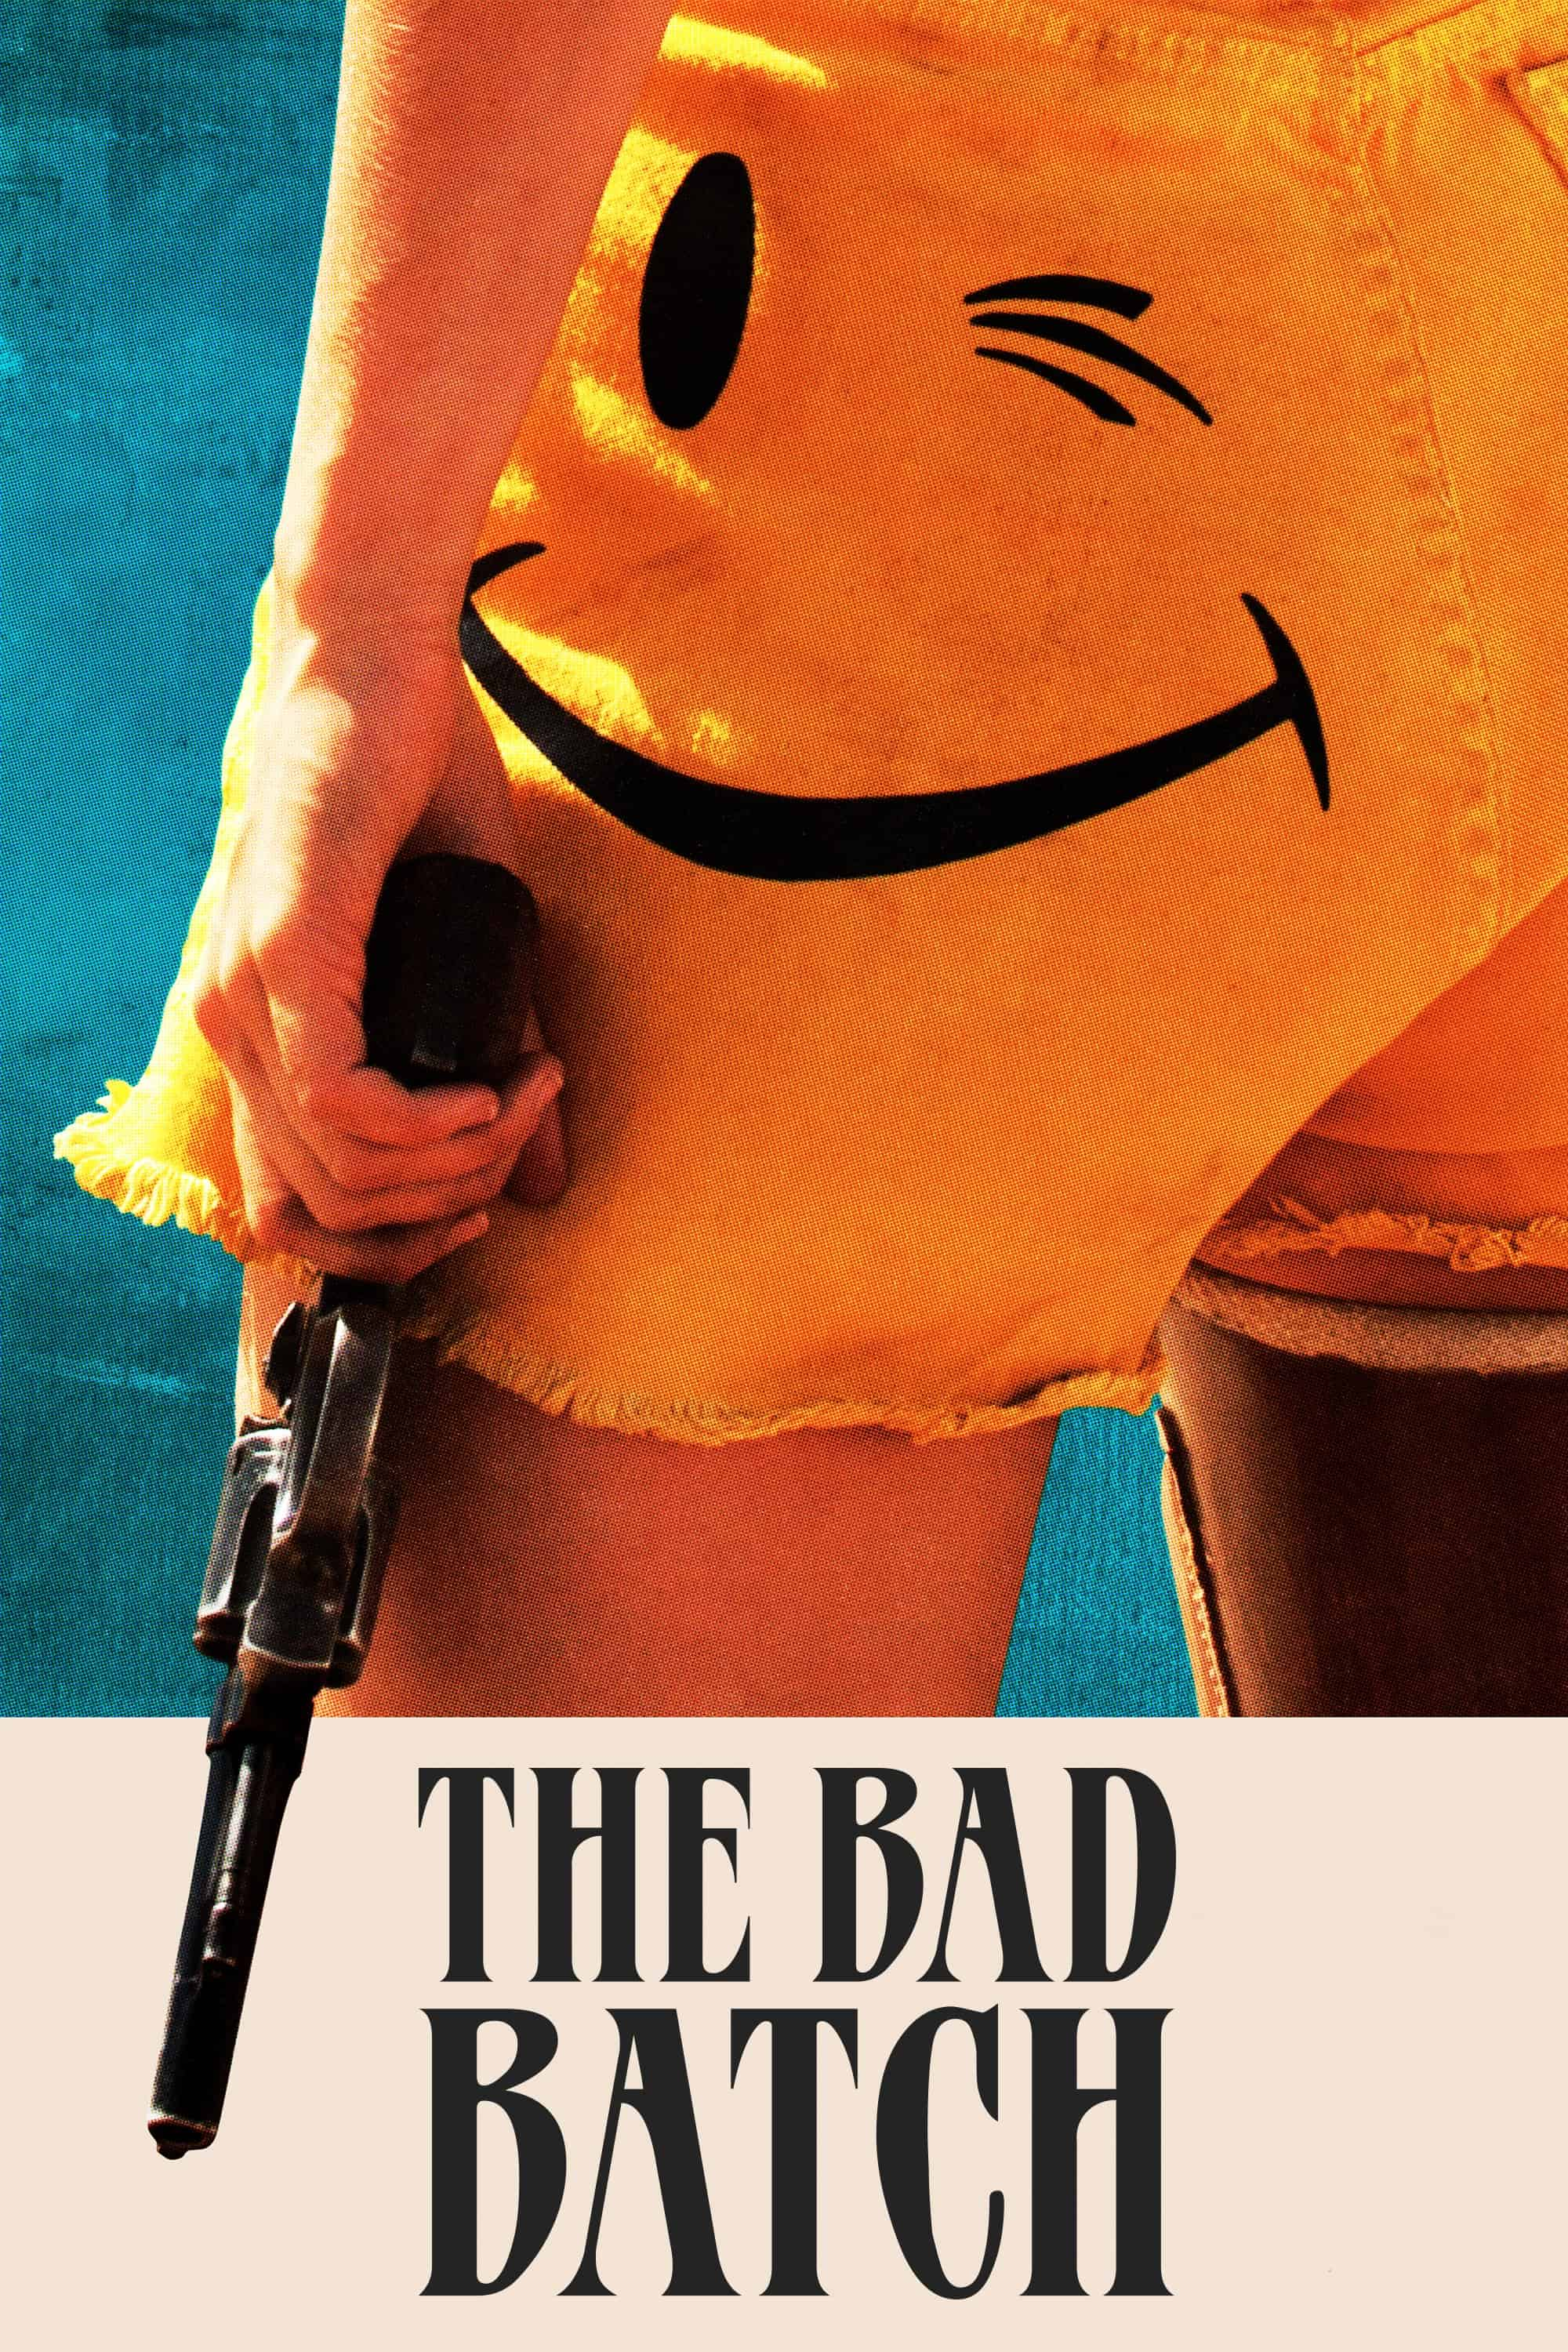 The Bad Batch, 2016